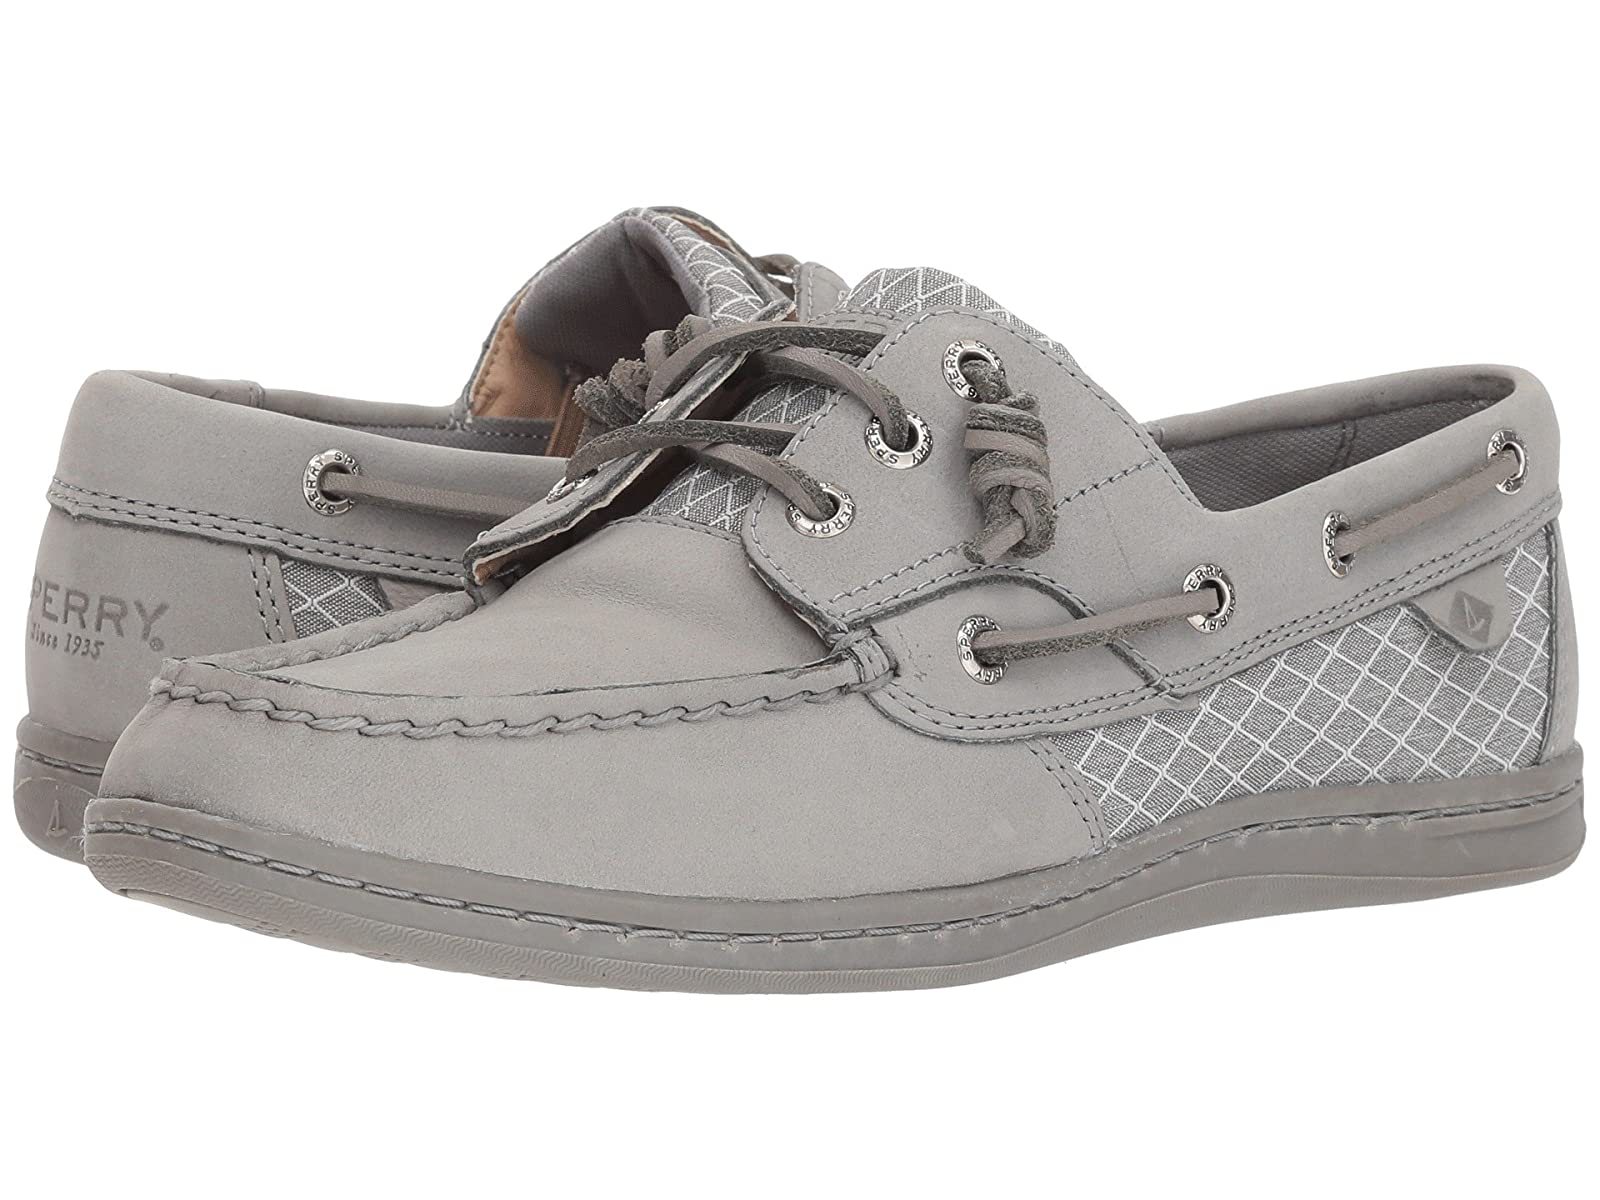 Sperry Songfish FloodedSelling fashionable and eye-catching shoes